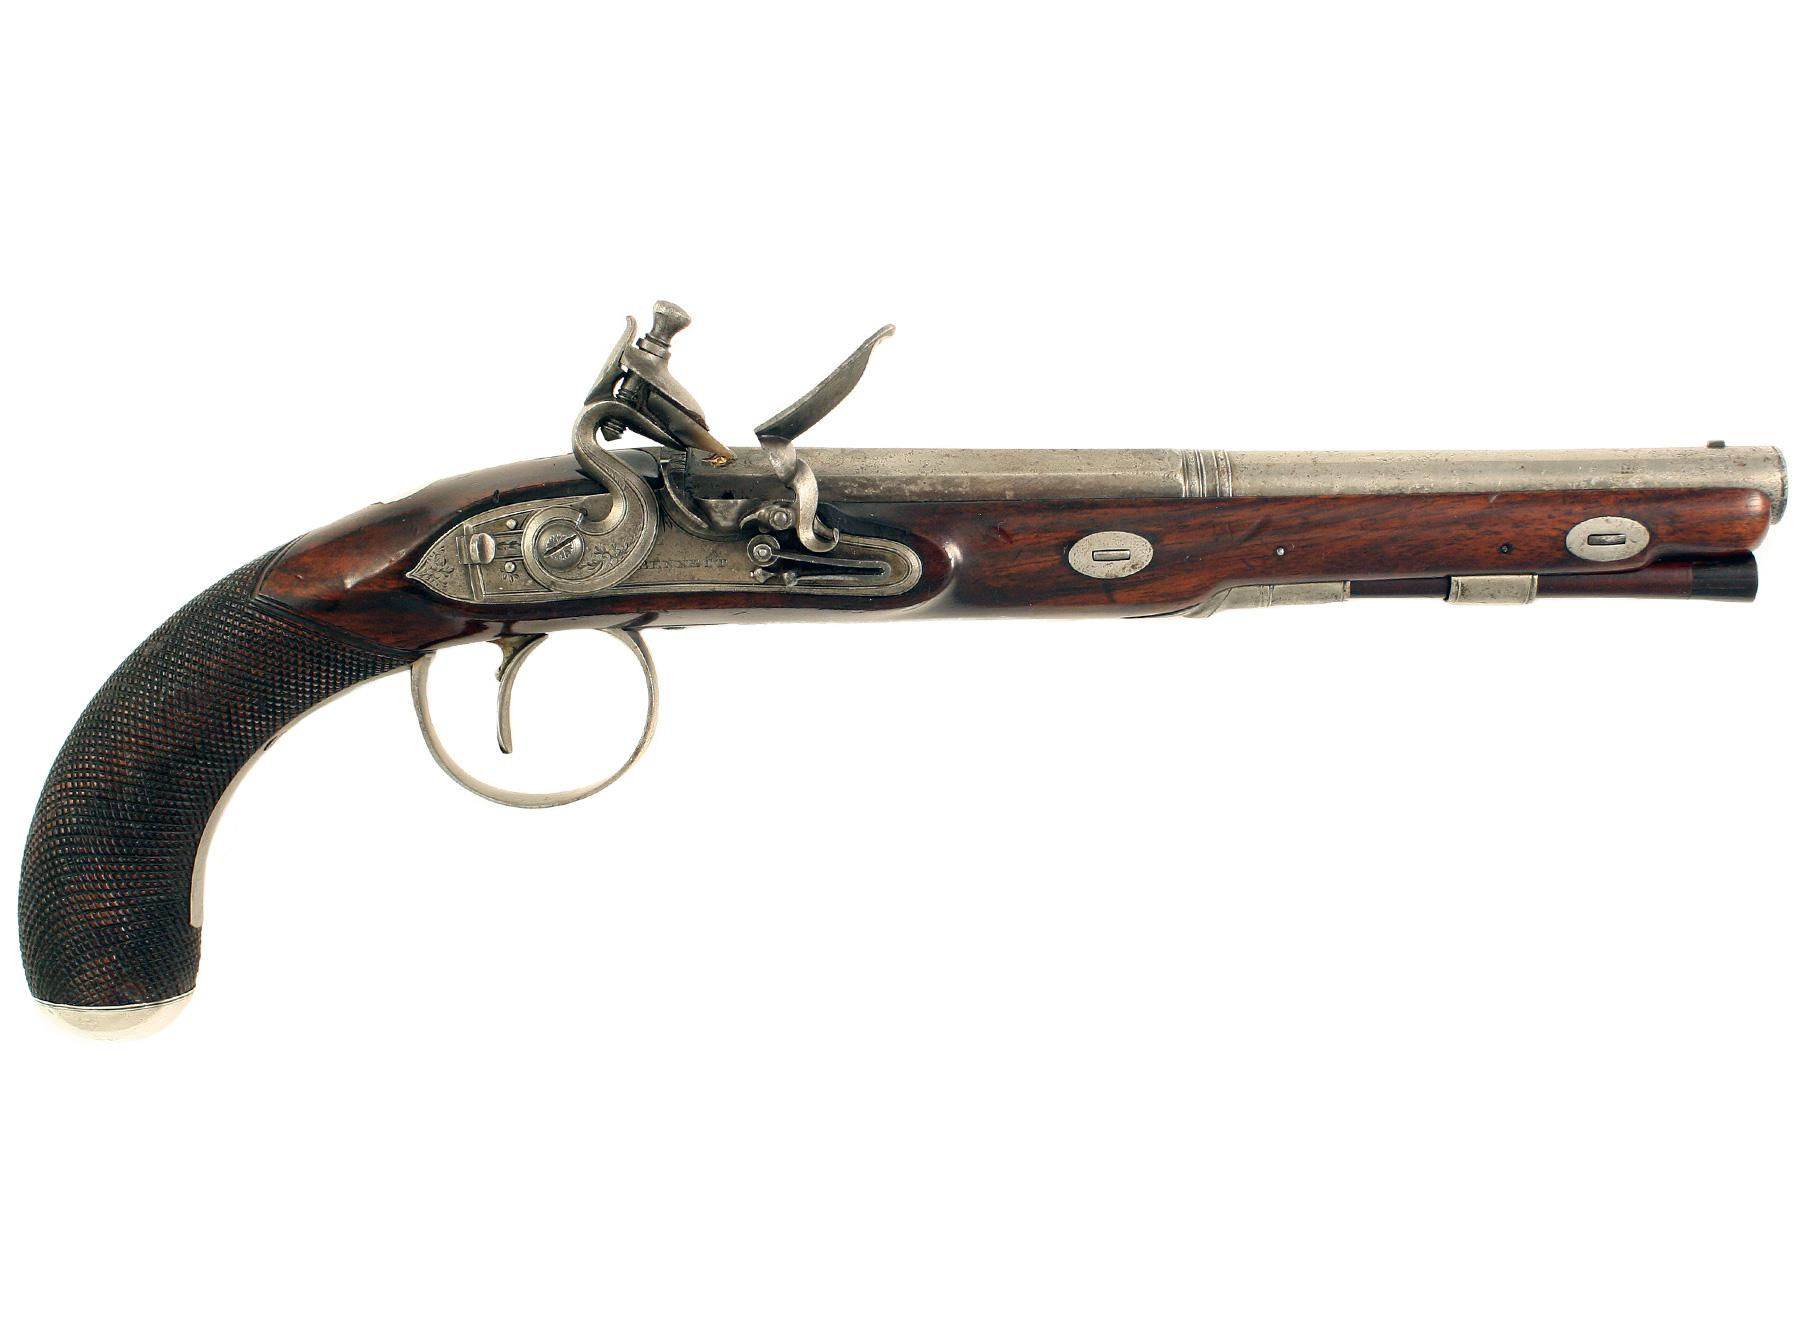 An Elegant Pistol by Bennet of London